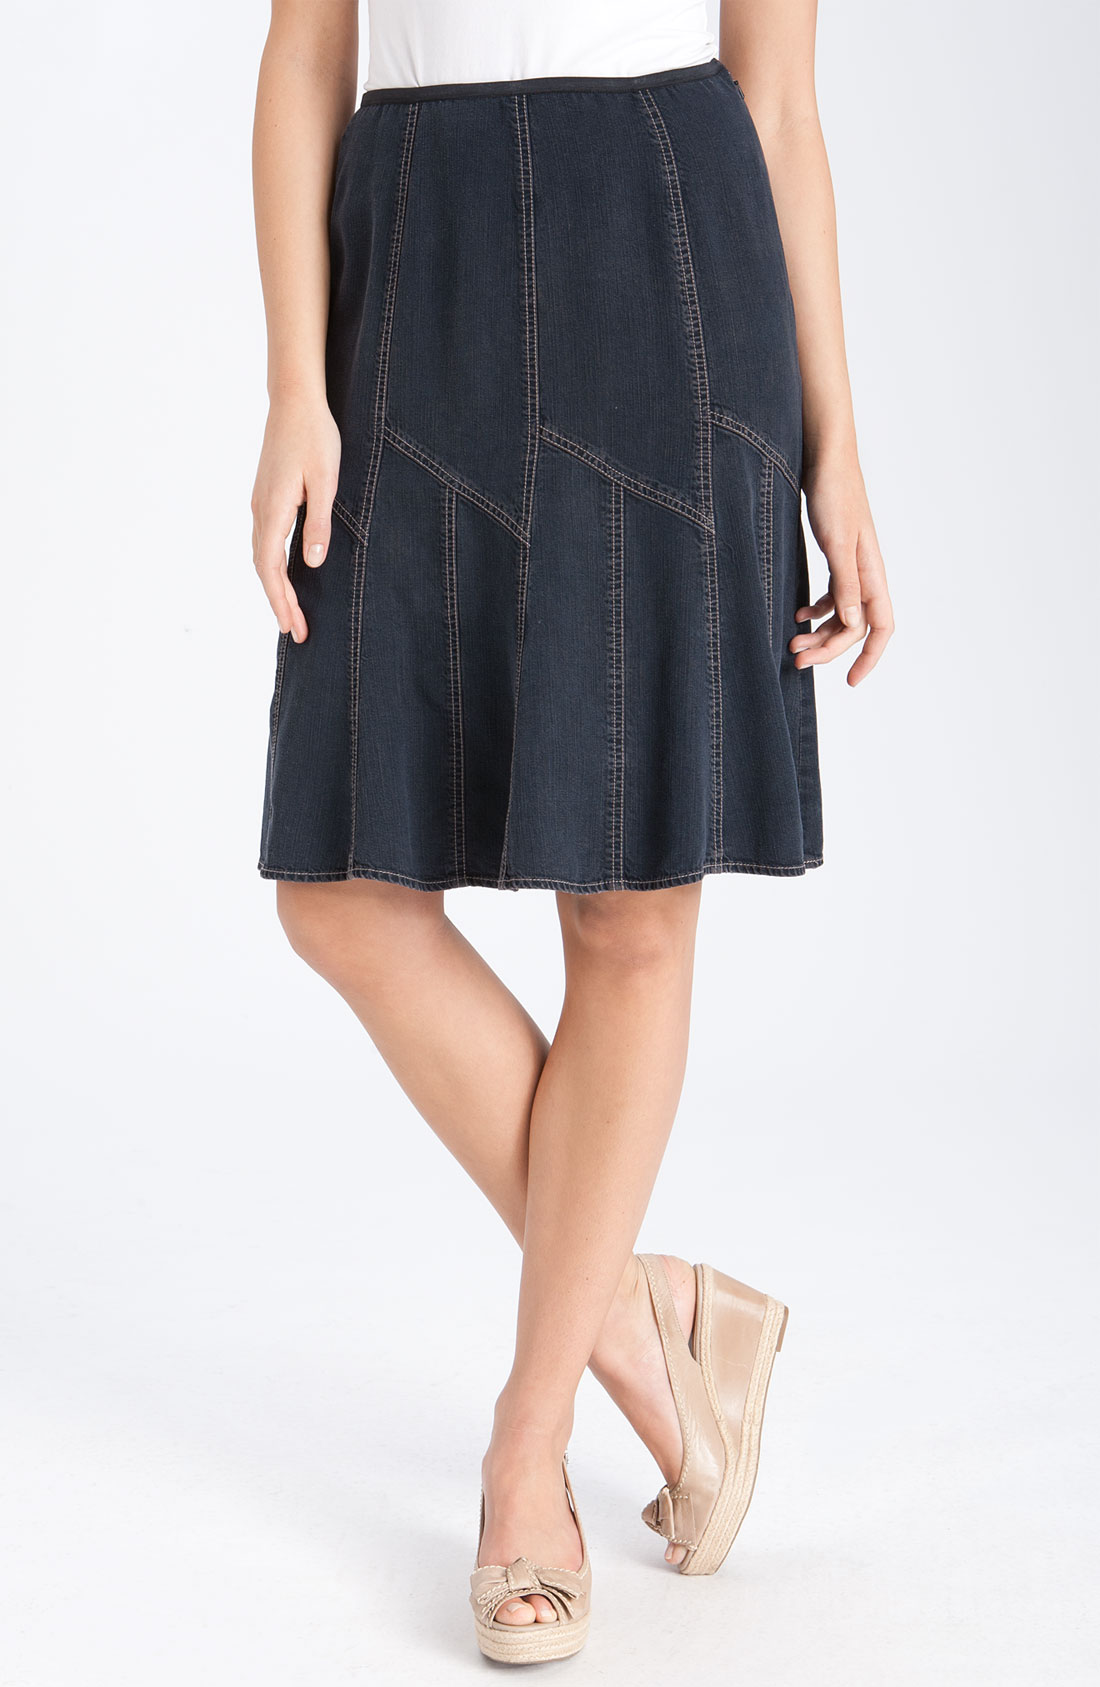 Nic + Zoe Denim Flirt Skirt in Blue (deep indigo)